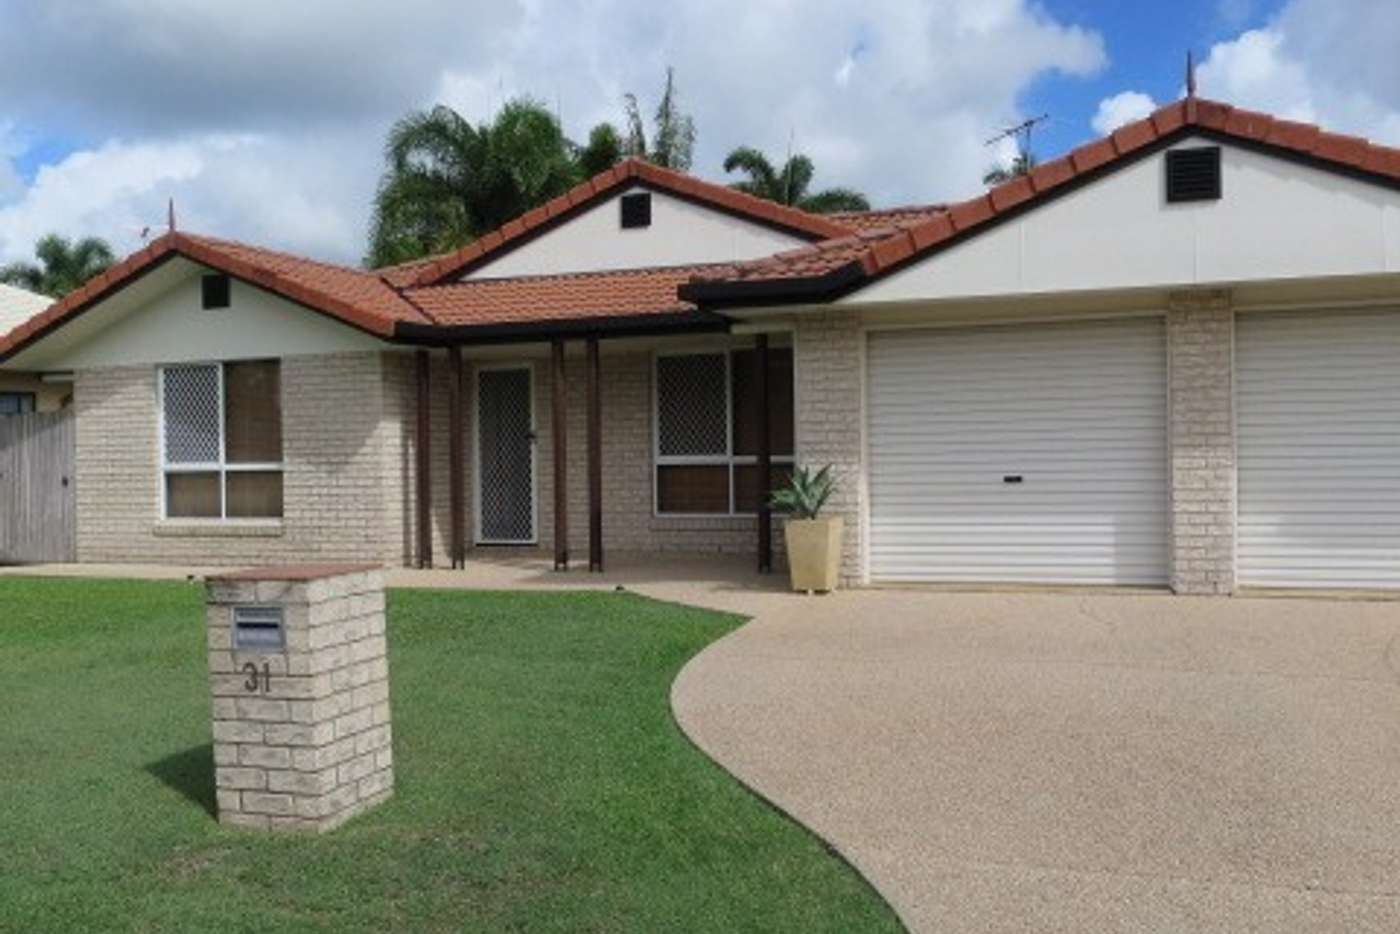 Main view of Homely house listing, 31 Fairmeadow Drive, Mount Pleasant QLD 4740